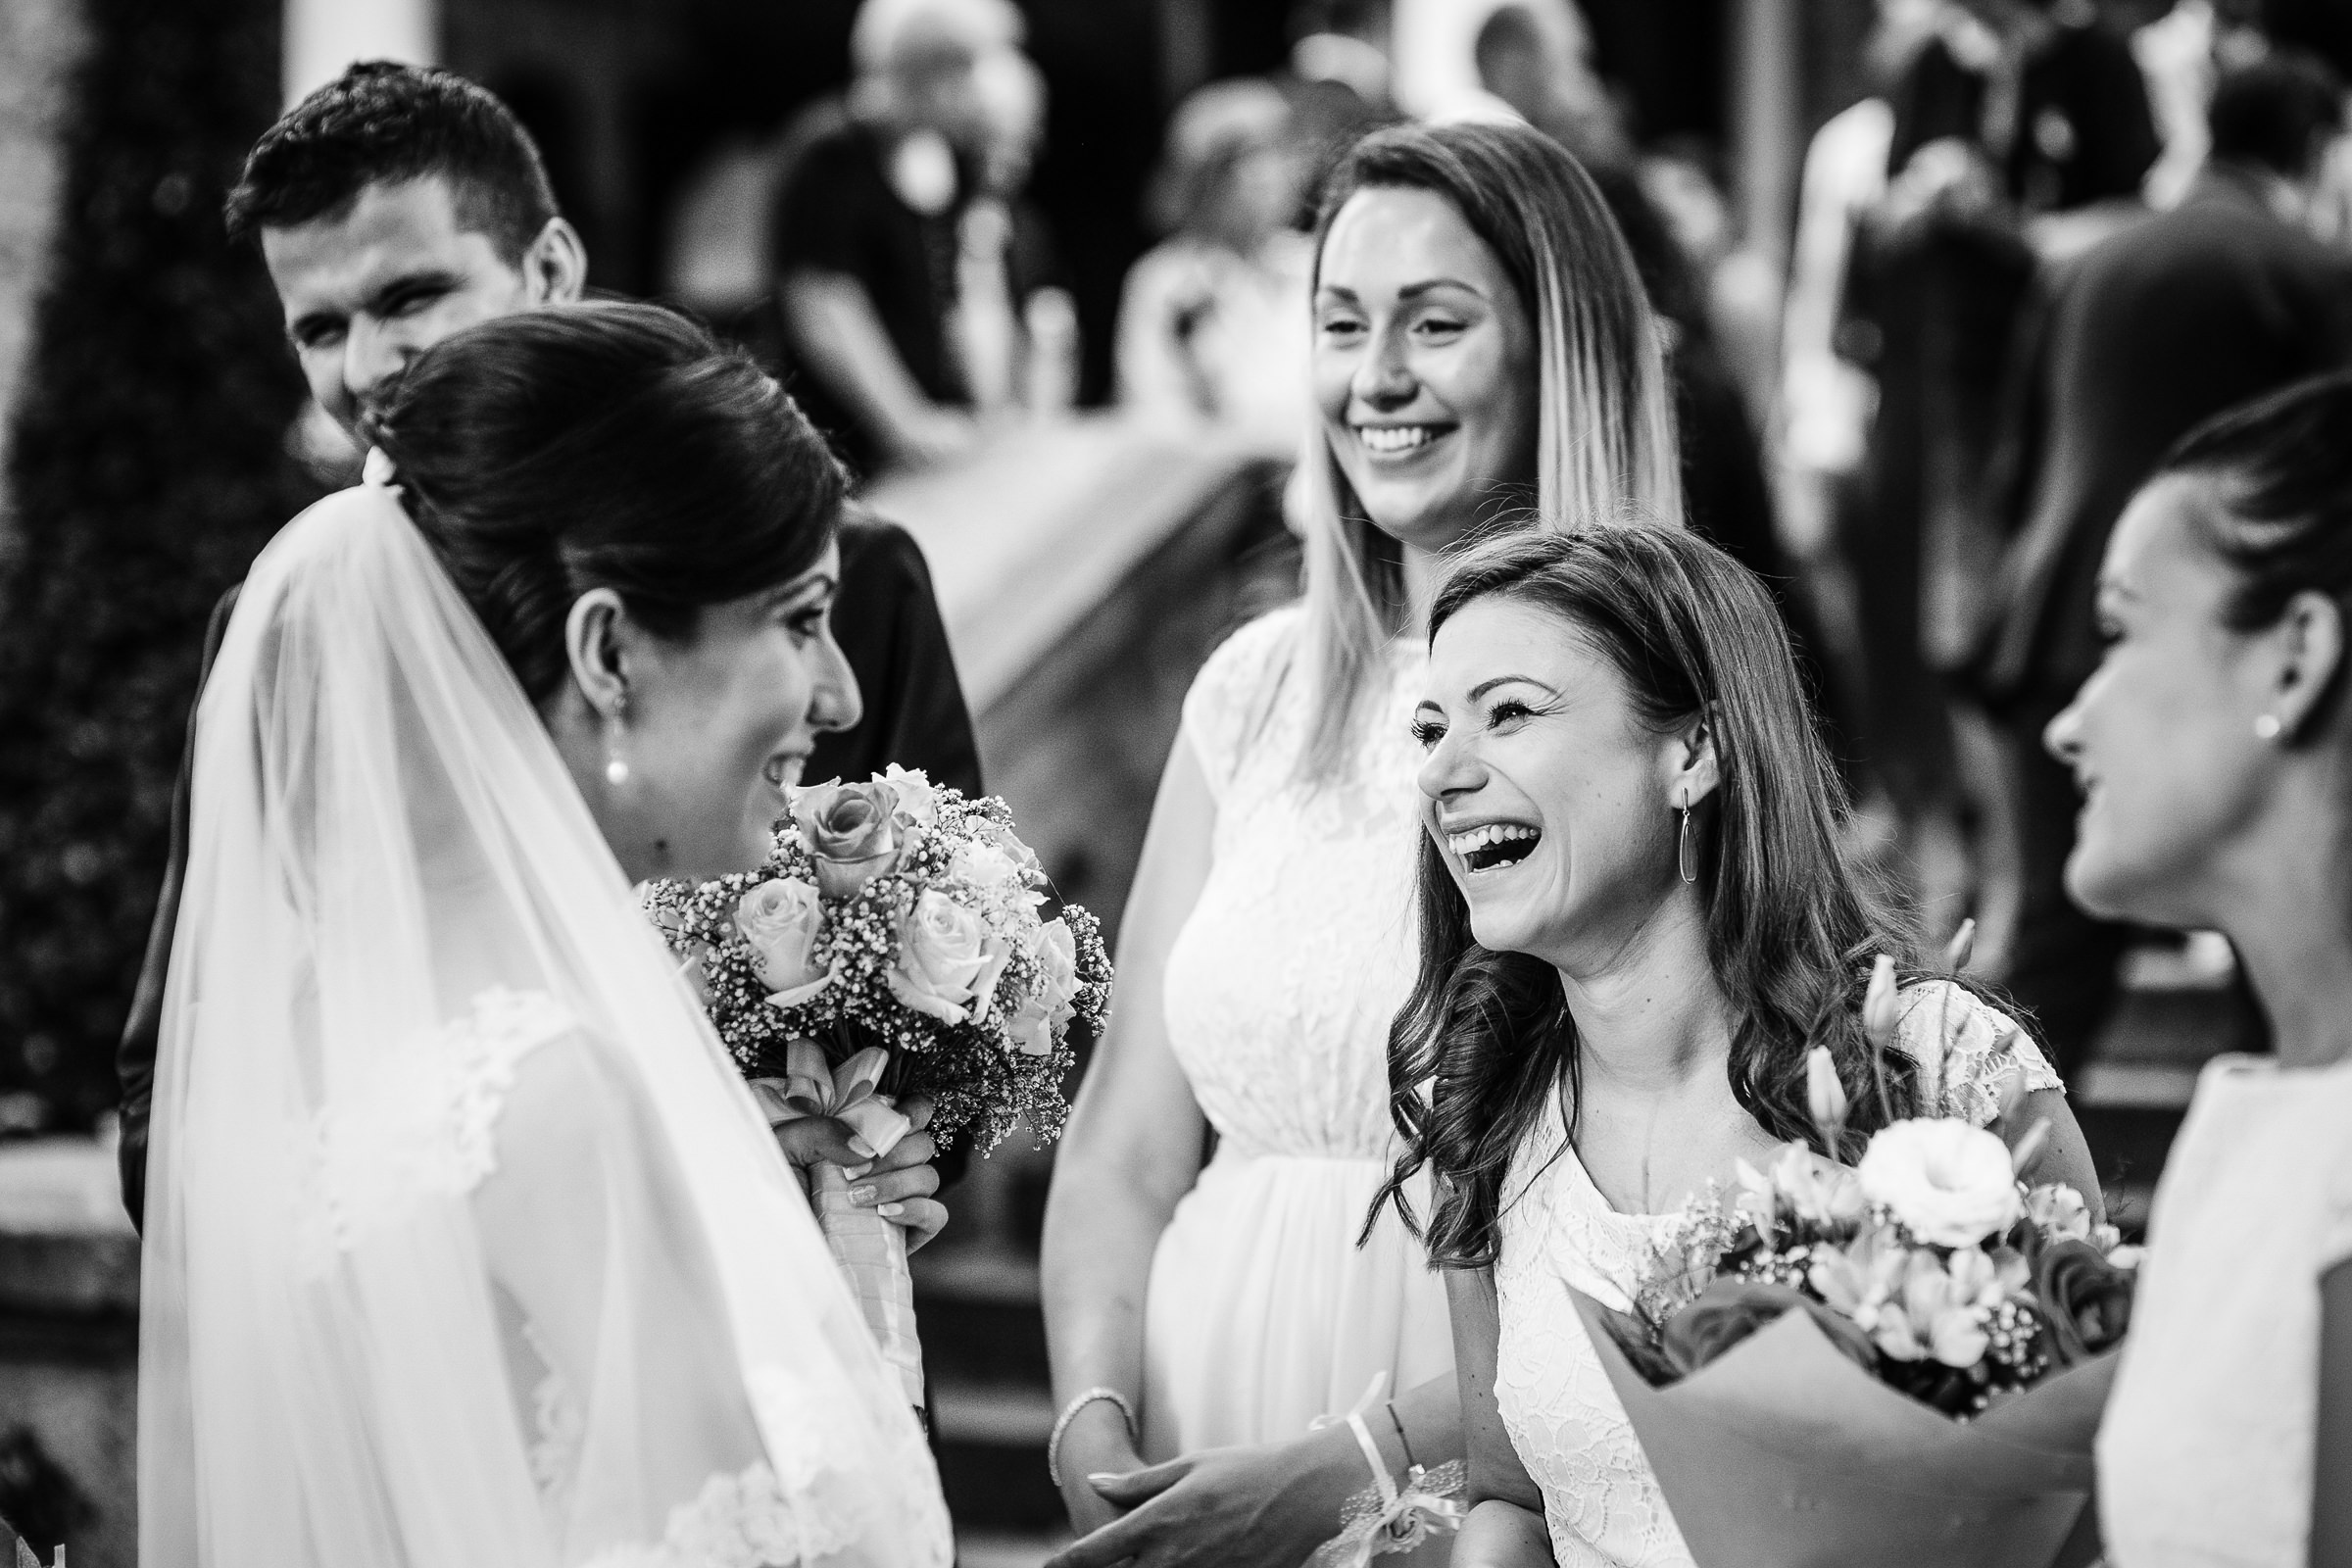 Bridesmaids laughing with bride after ceremony - photo by Deliysky Studio